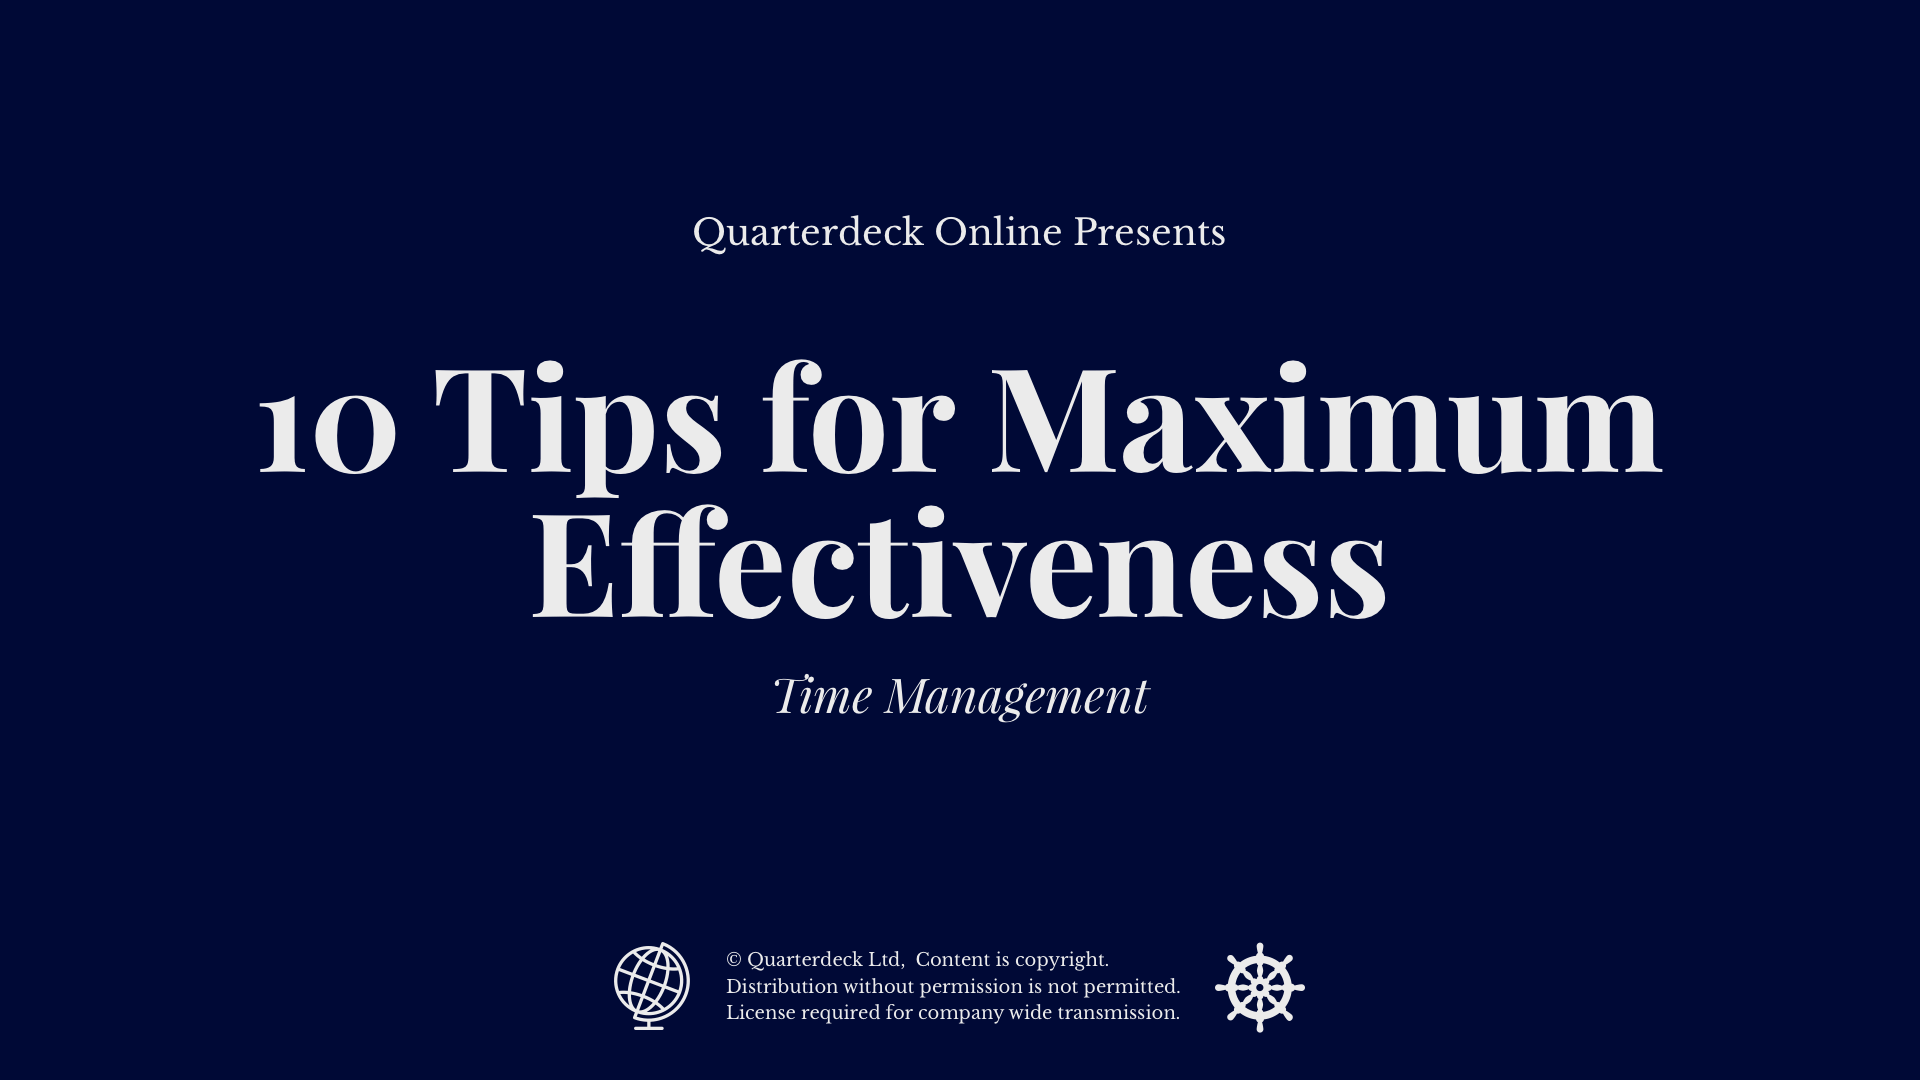 10 Tips for Maximum Effectiveness